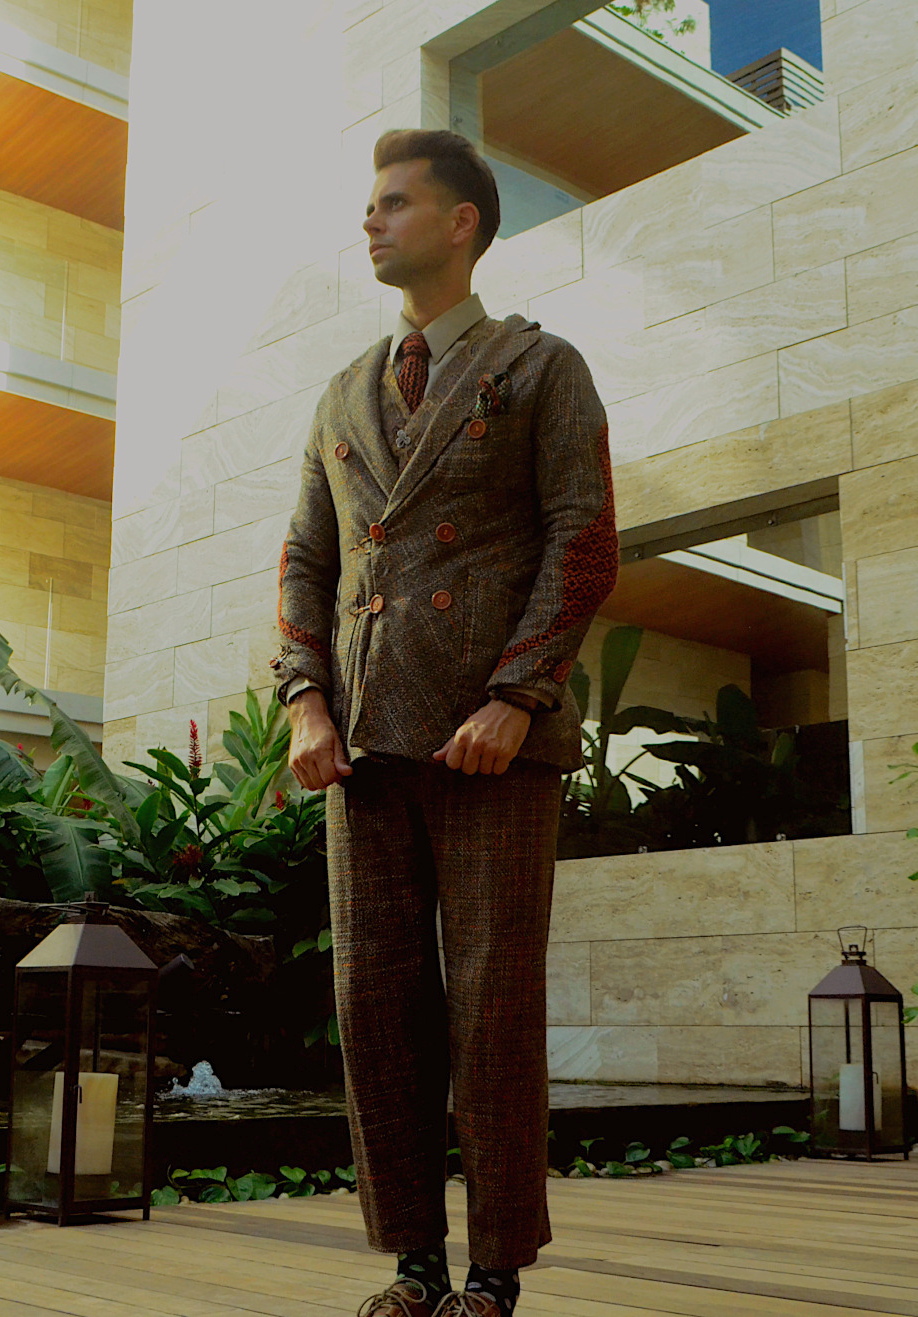 Bespoke wool and silk suit with a creative cut and interesting design features via GSb wearables.